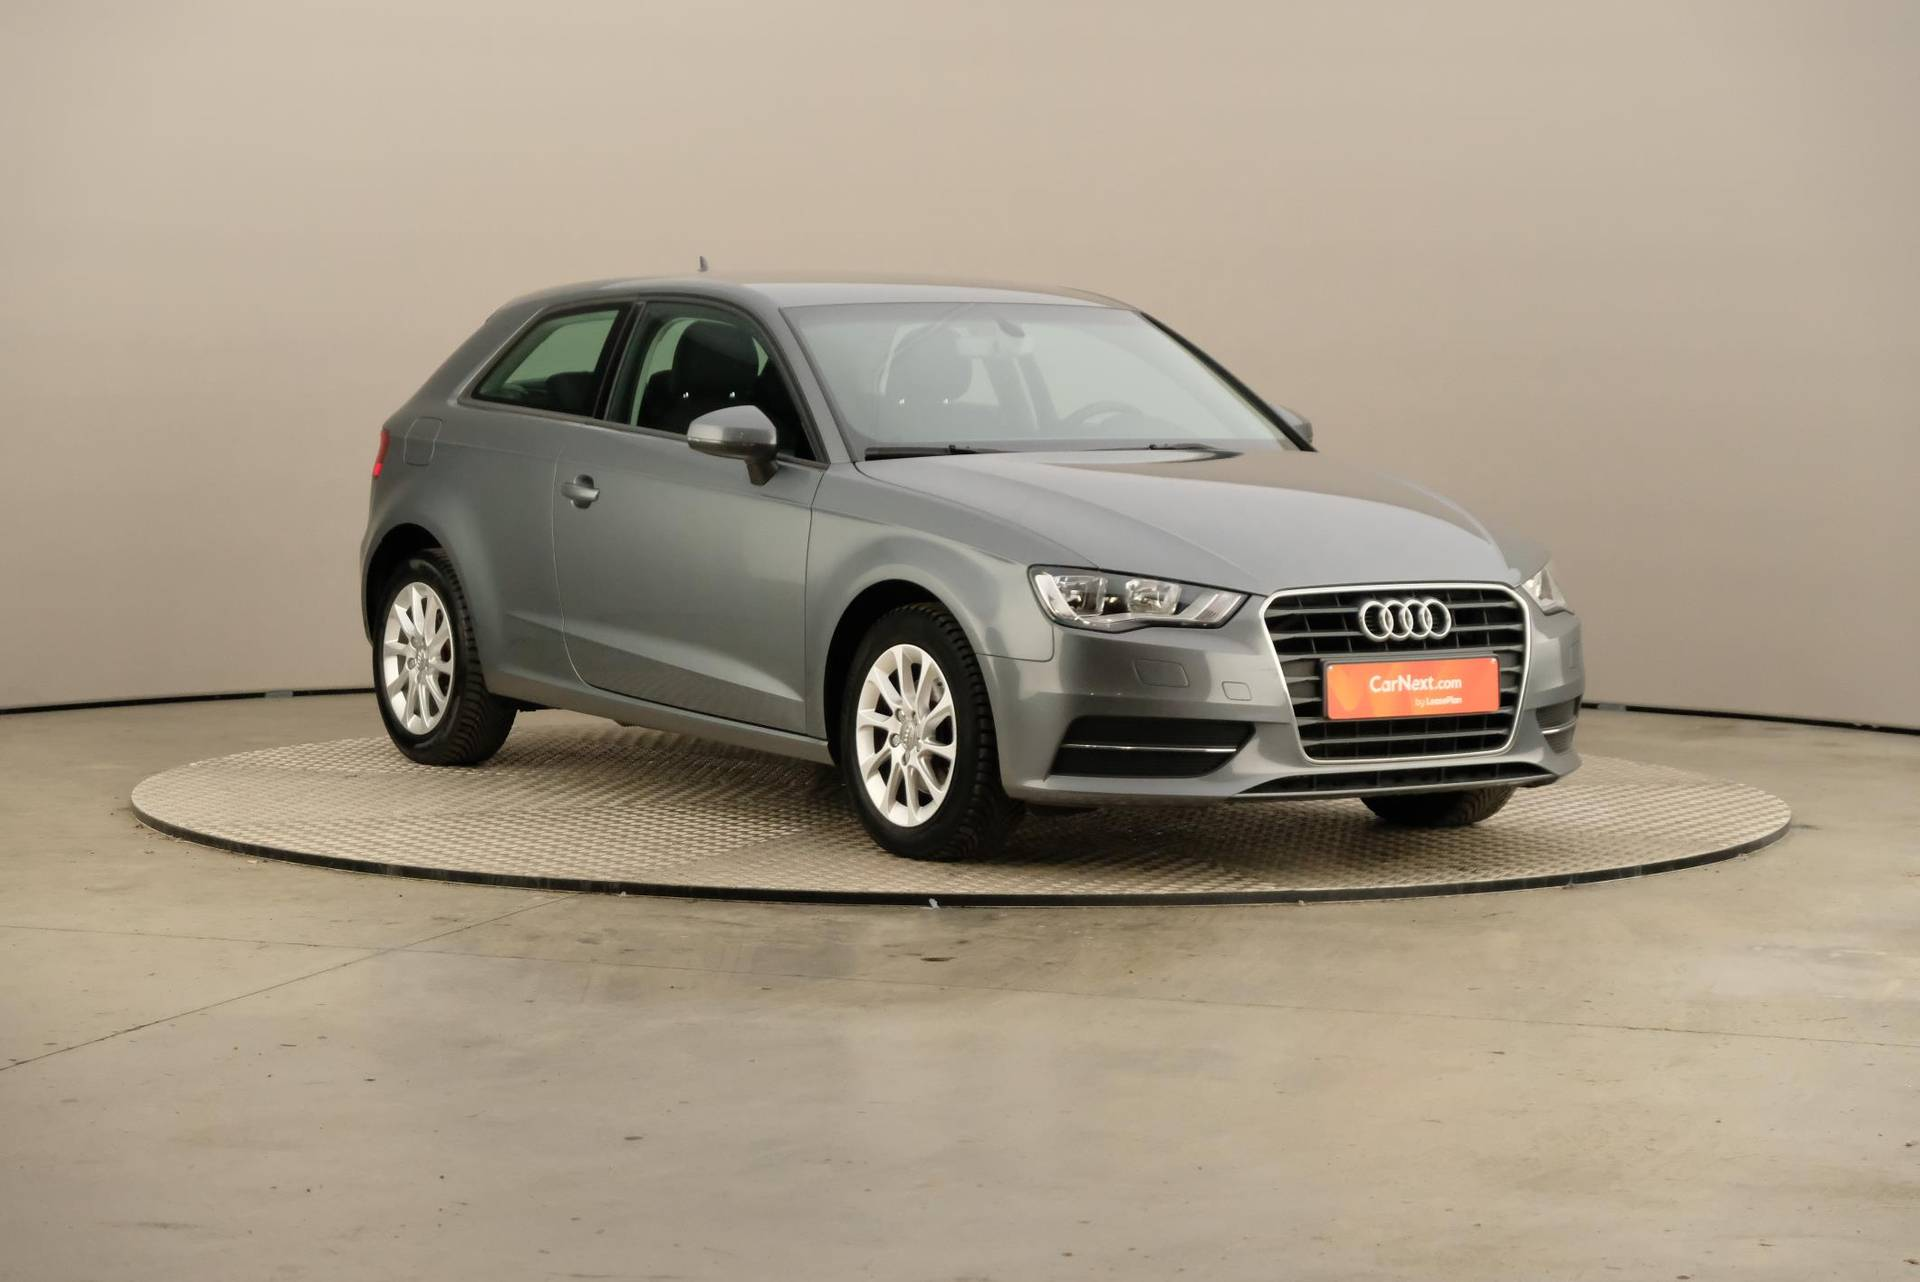 Audi A3 1.6 TDi ULTRA Attraction GPS PDC BLUETOOTH, 360-image27